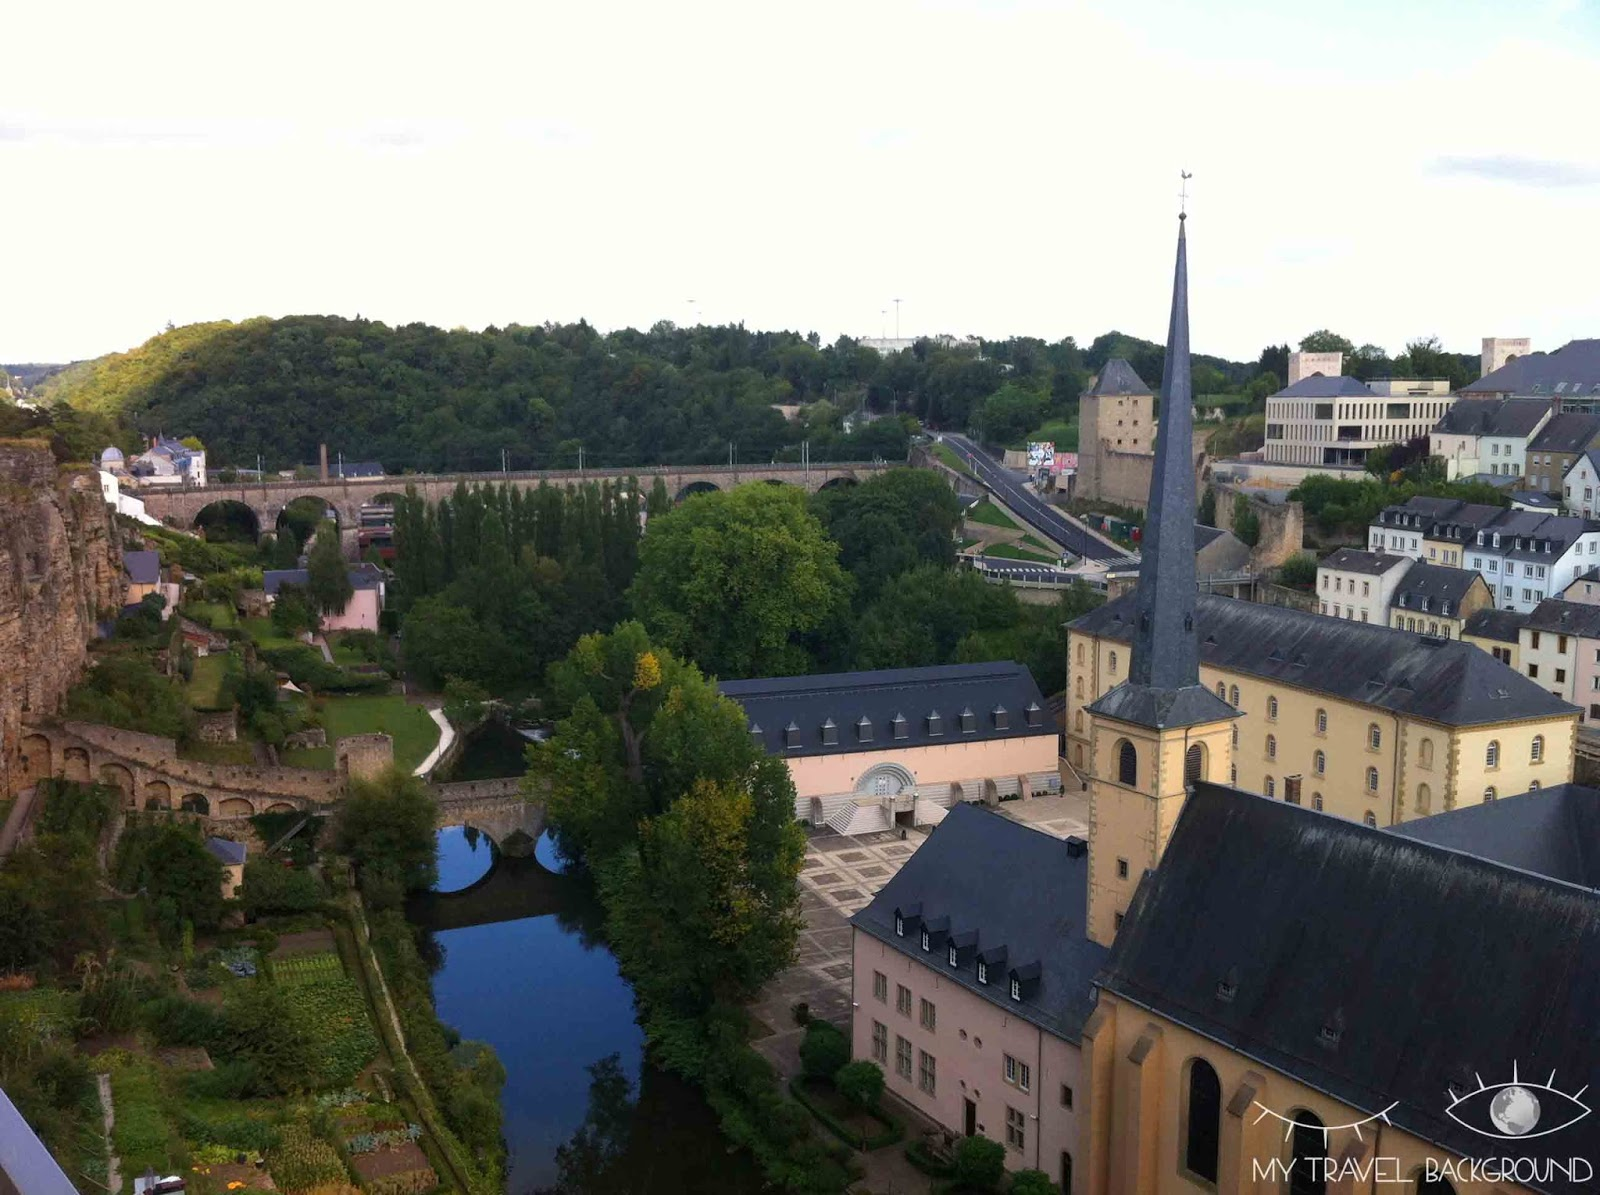 My Travel Background : A la découverte de Longwy, ville-étape du Tour de France 2017 - Luxembourg-ville